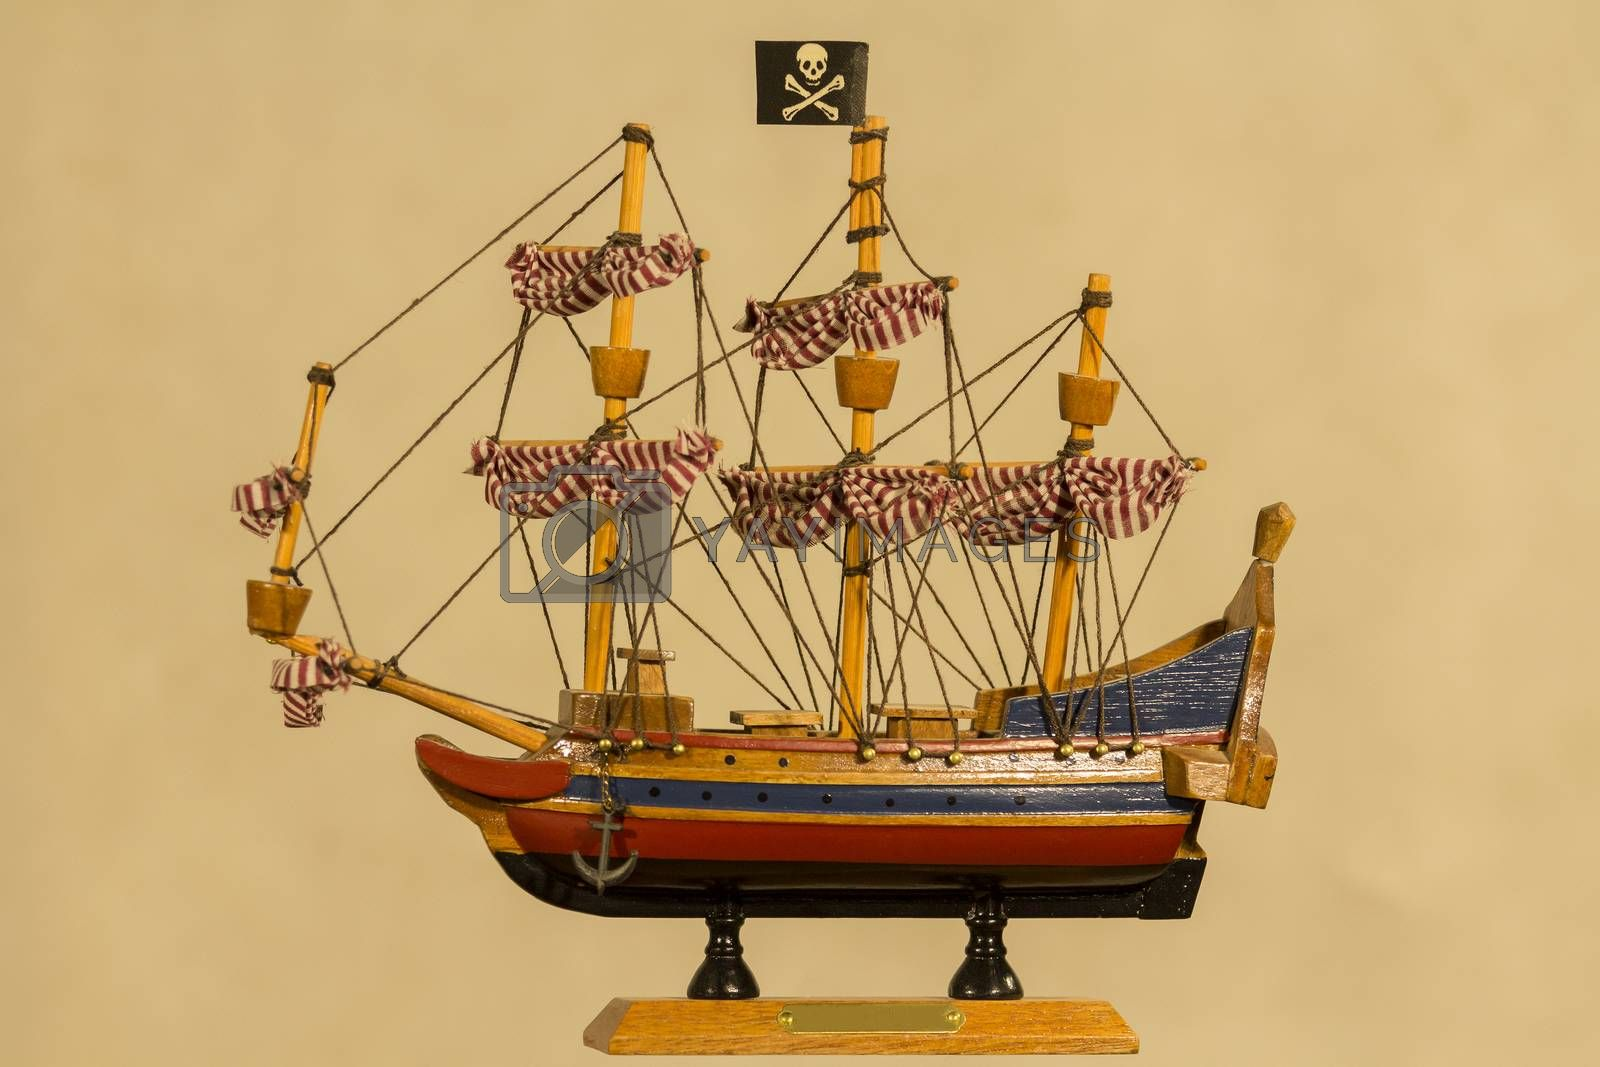 detailed XVIII century frigate model isolated over grey background